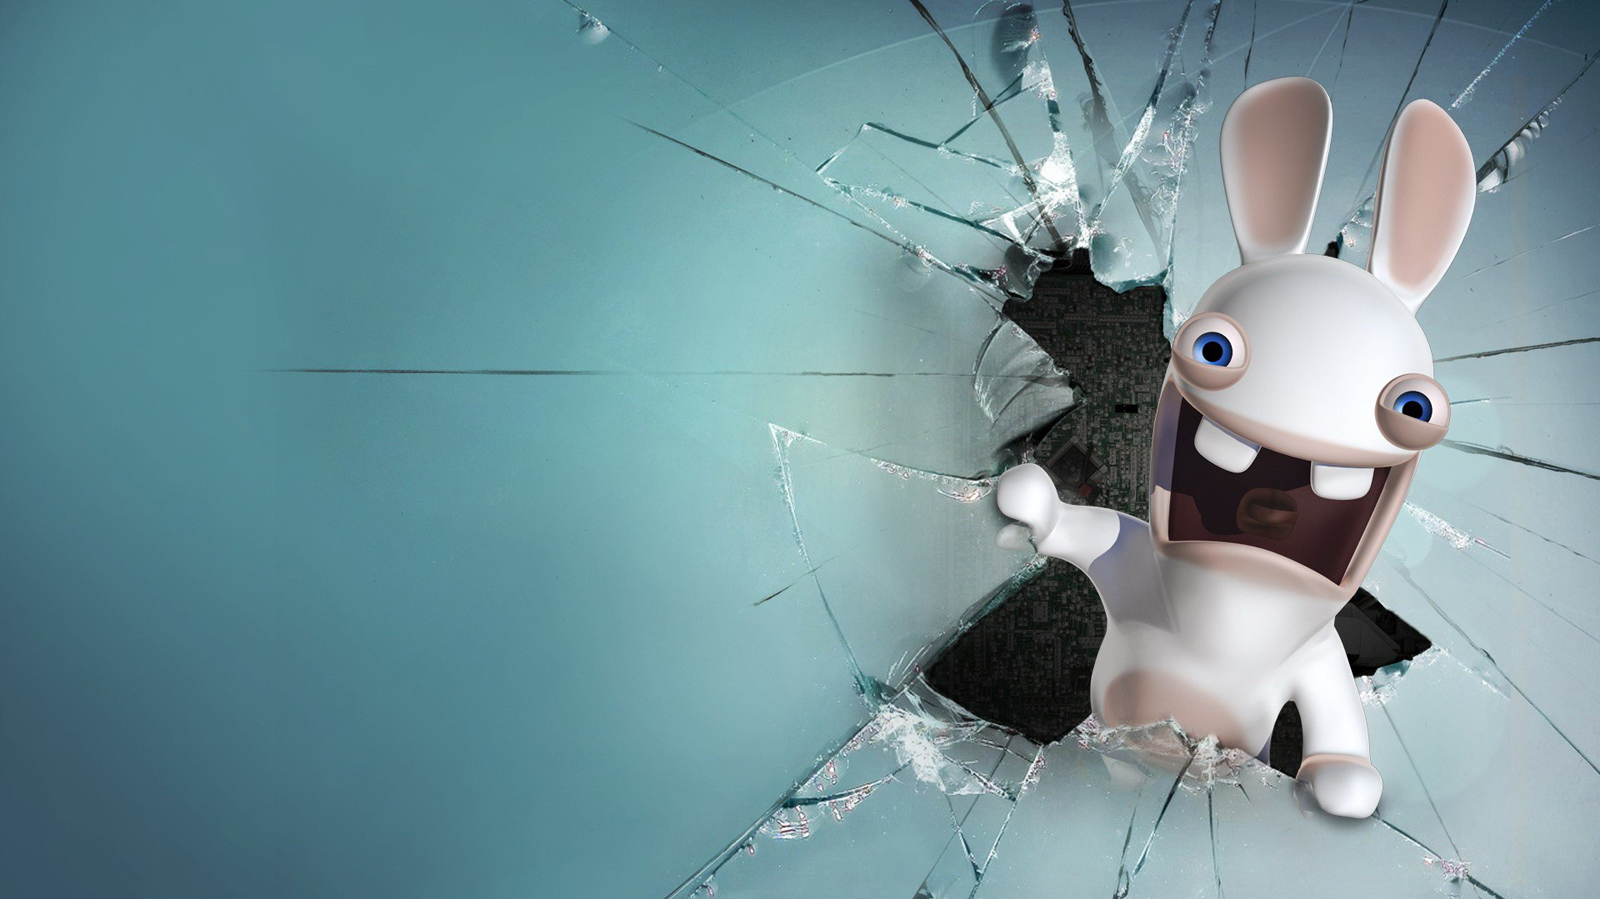 Funny wallpaper wallpaper for computer funny hd wallpapers 1600x899 voltagebd Image collections